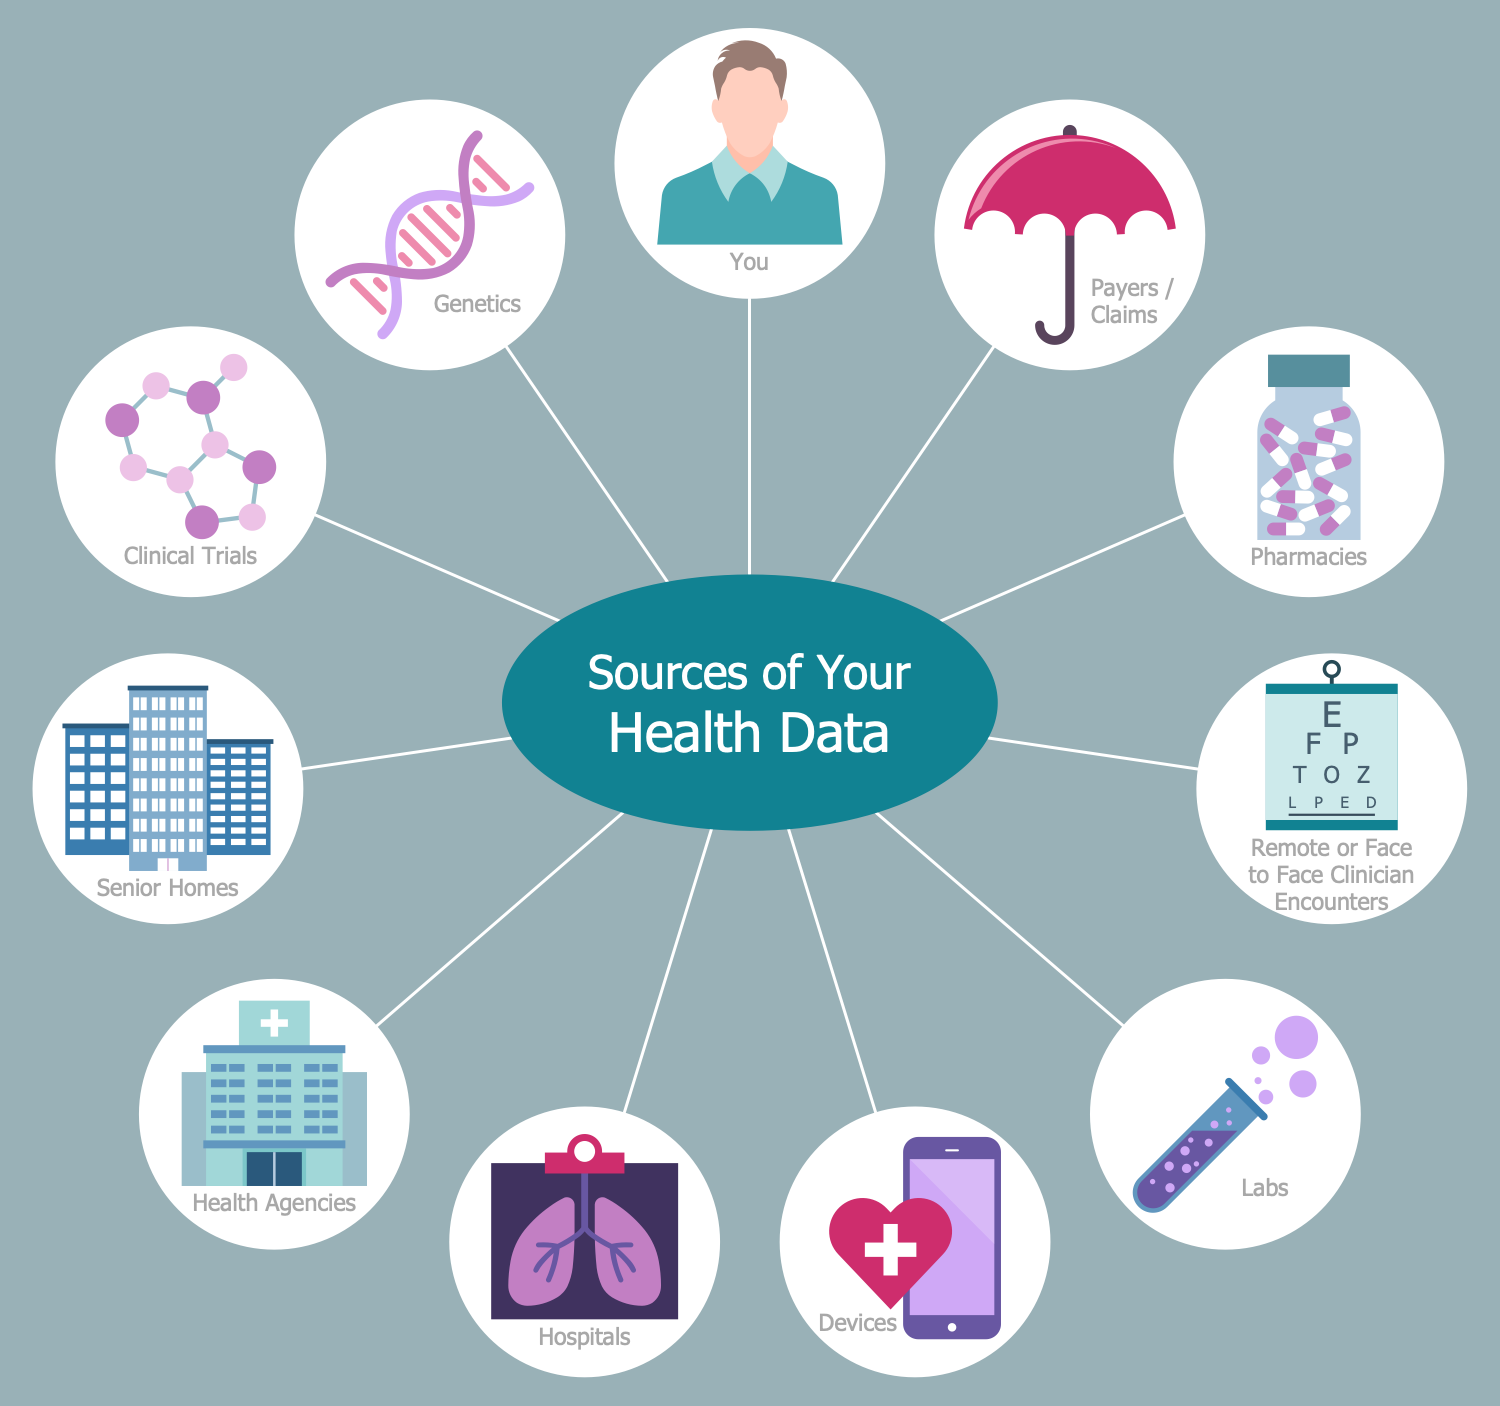 Sources of Health Data